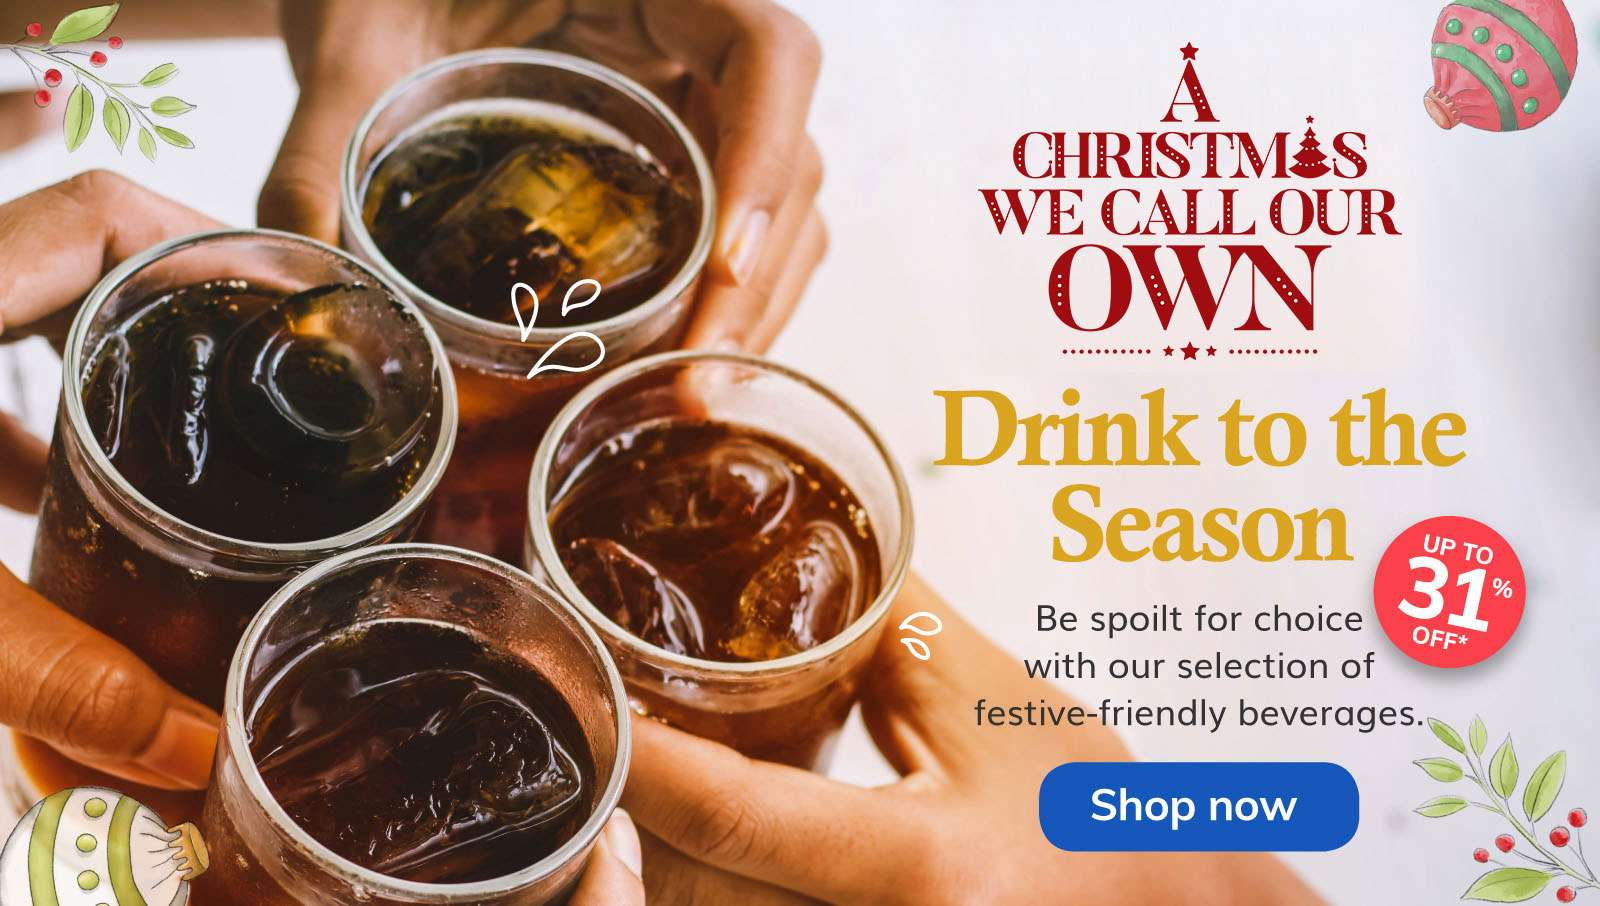 Drink to the Season